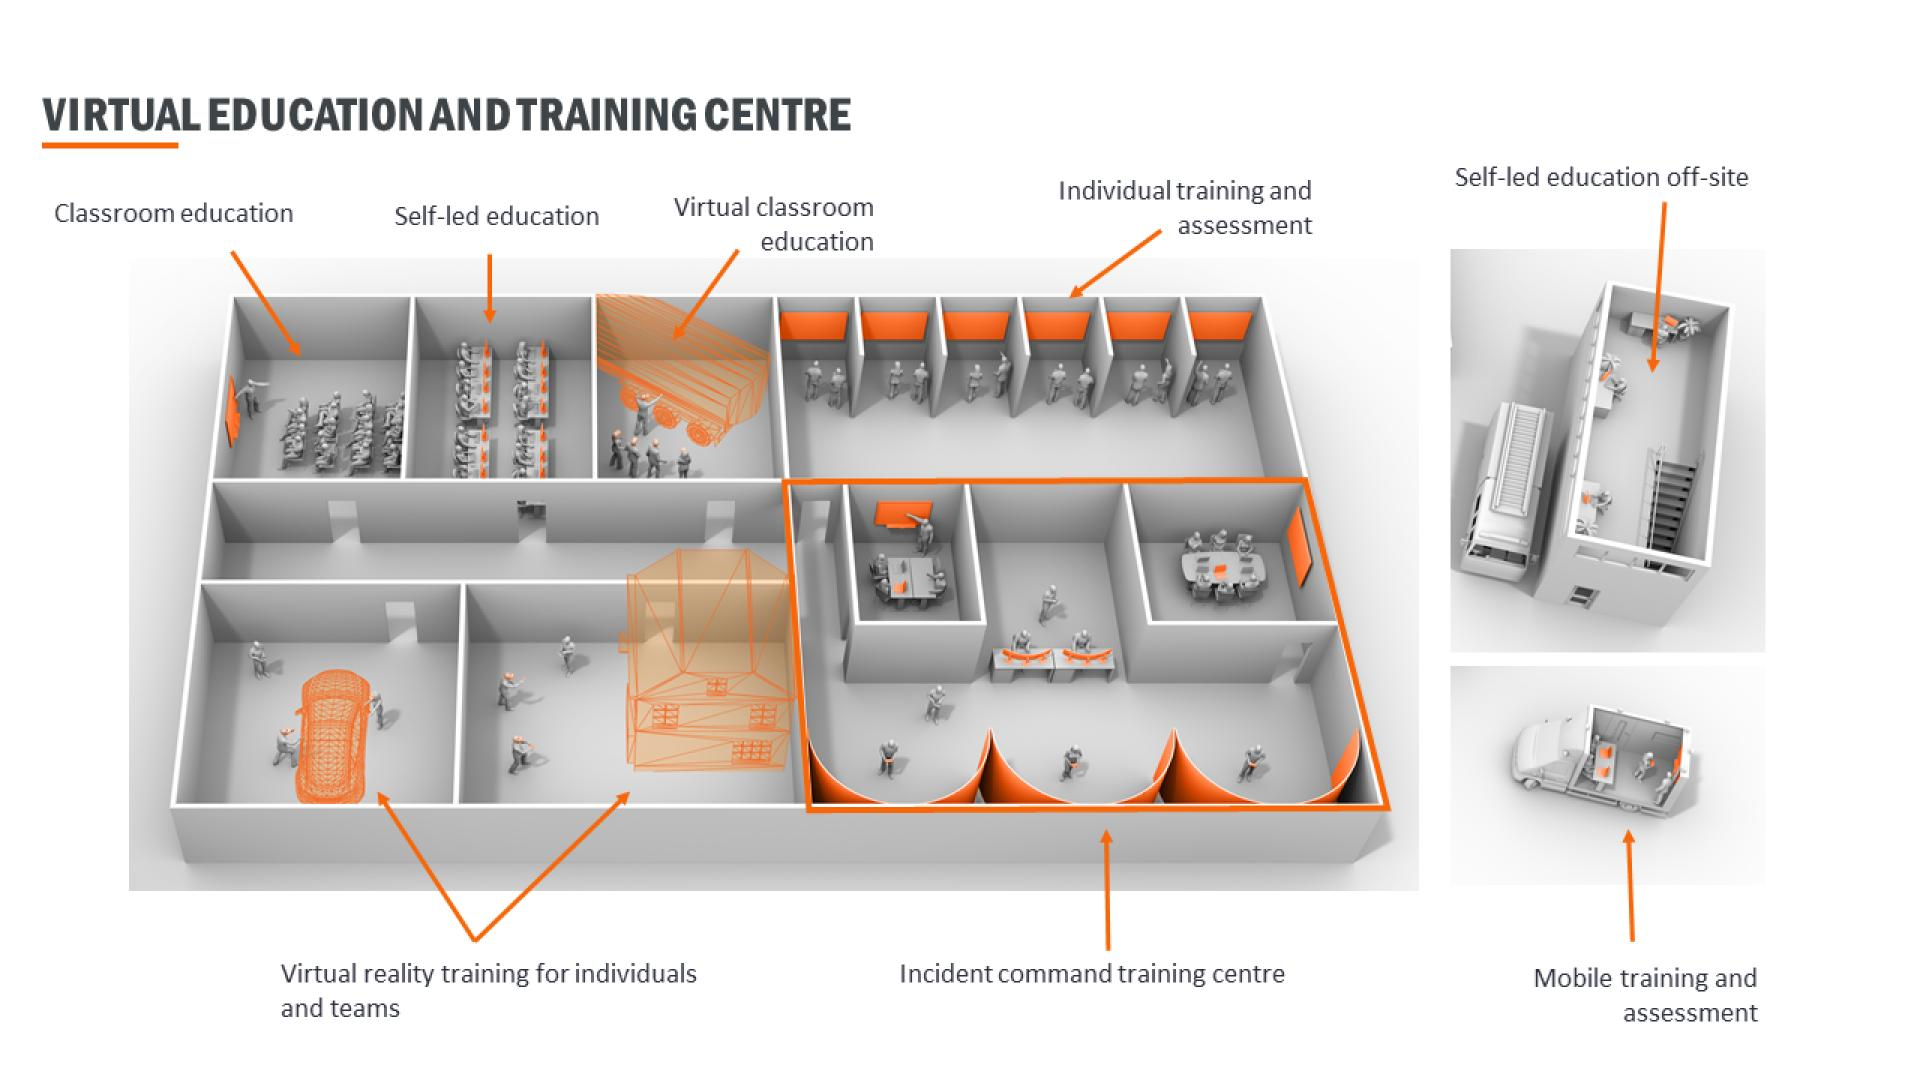 Overview of an XVR equipped training centre